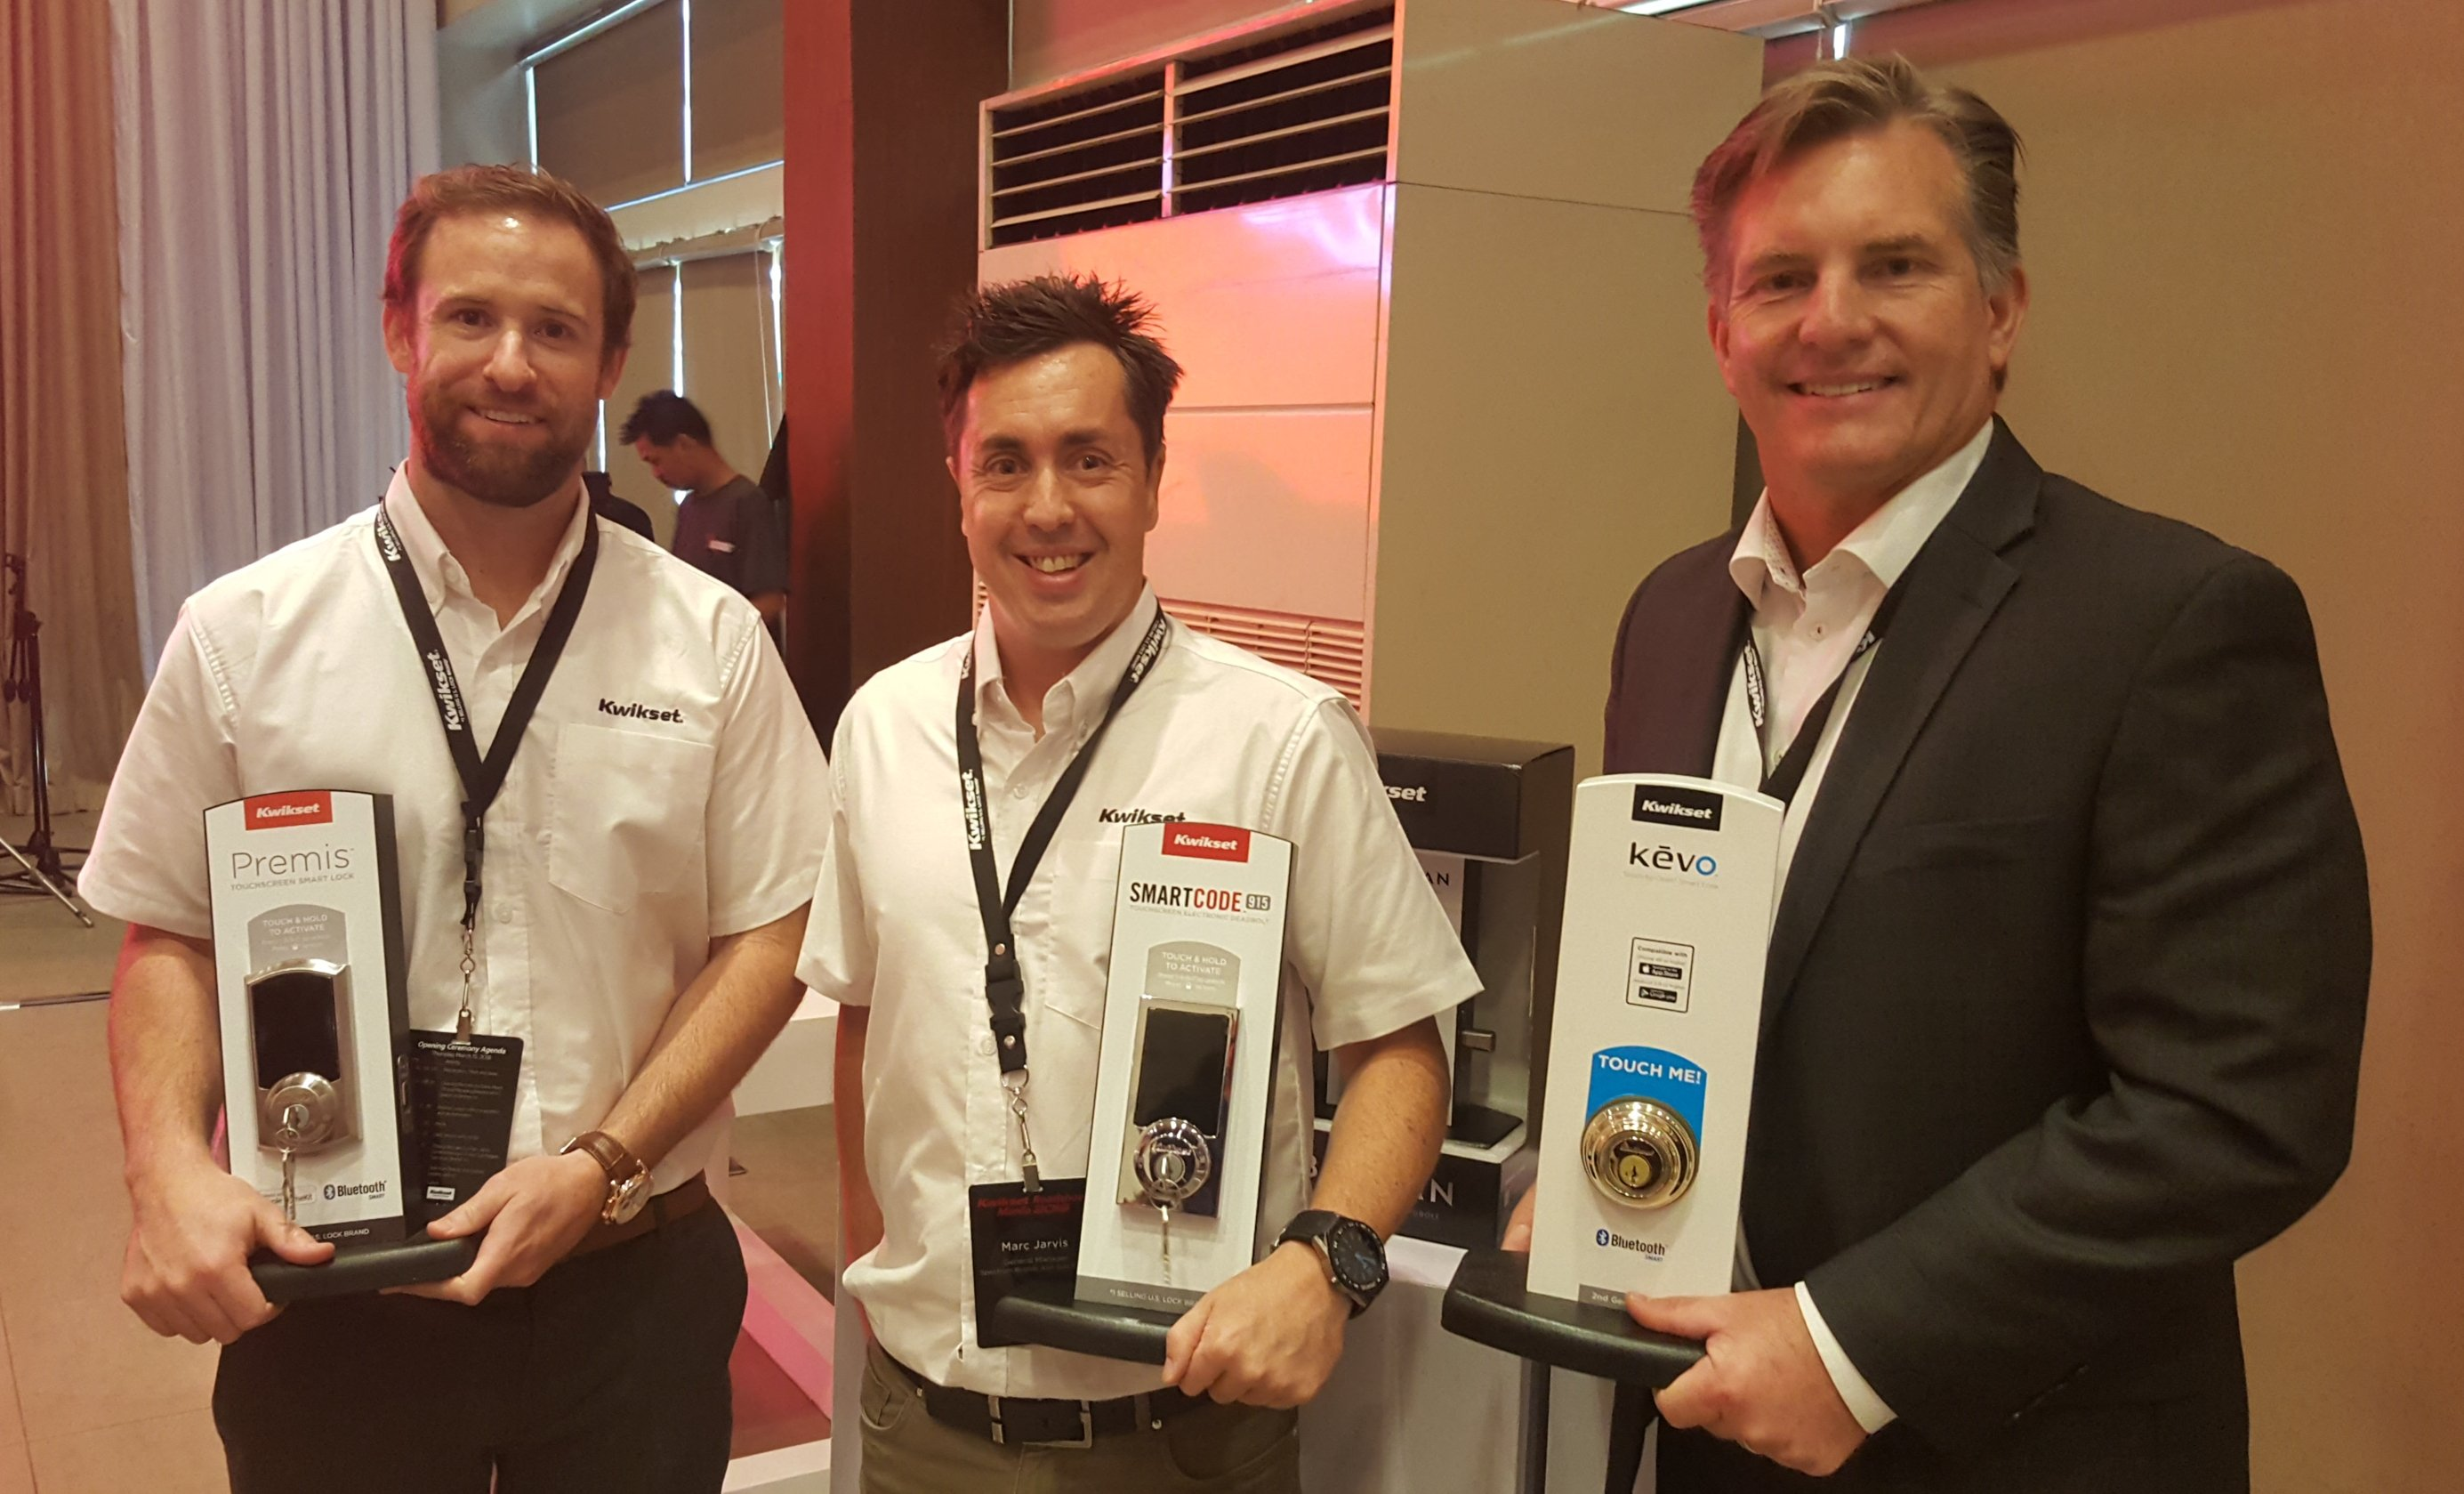 (From Left to Right) Kevin Sander, International Brand Manager, Marc Jarvis, General Manager of Asia Sub Region and Dave Alber, Vice President and Managing Director of APAC Spectrum Brands Inc.,